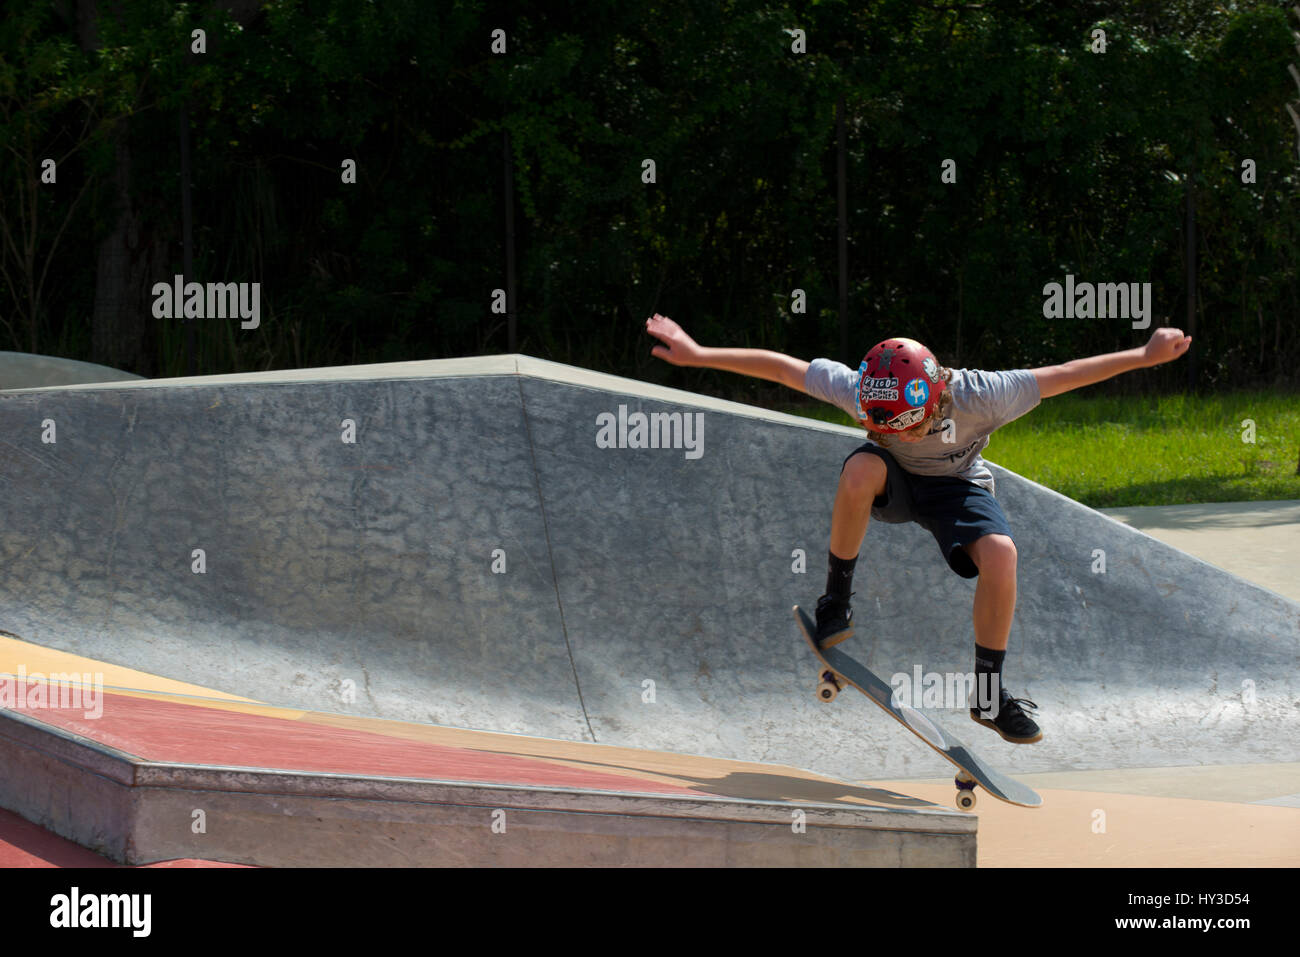 young boy on skate board jumping - Stock Image